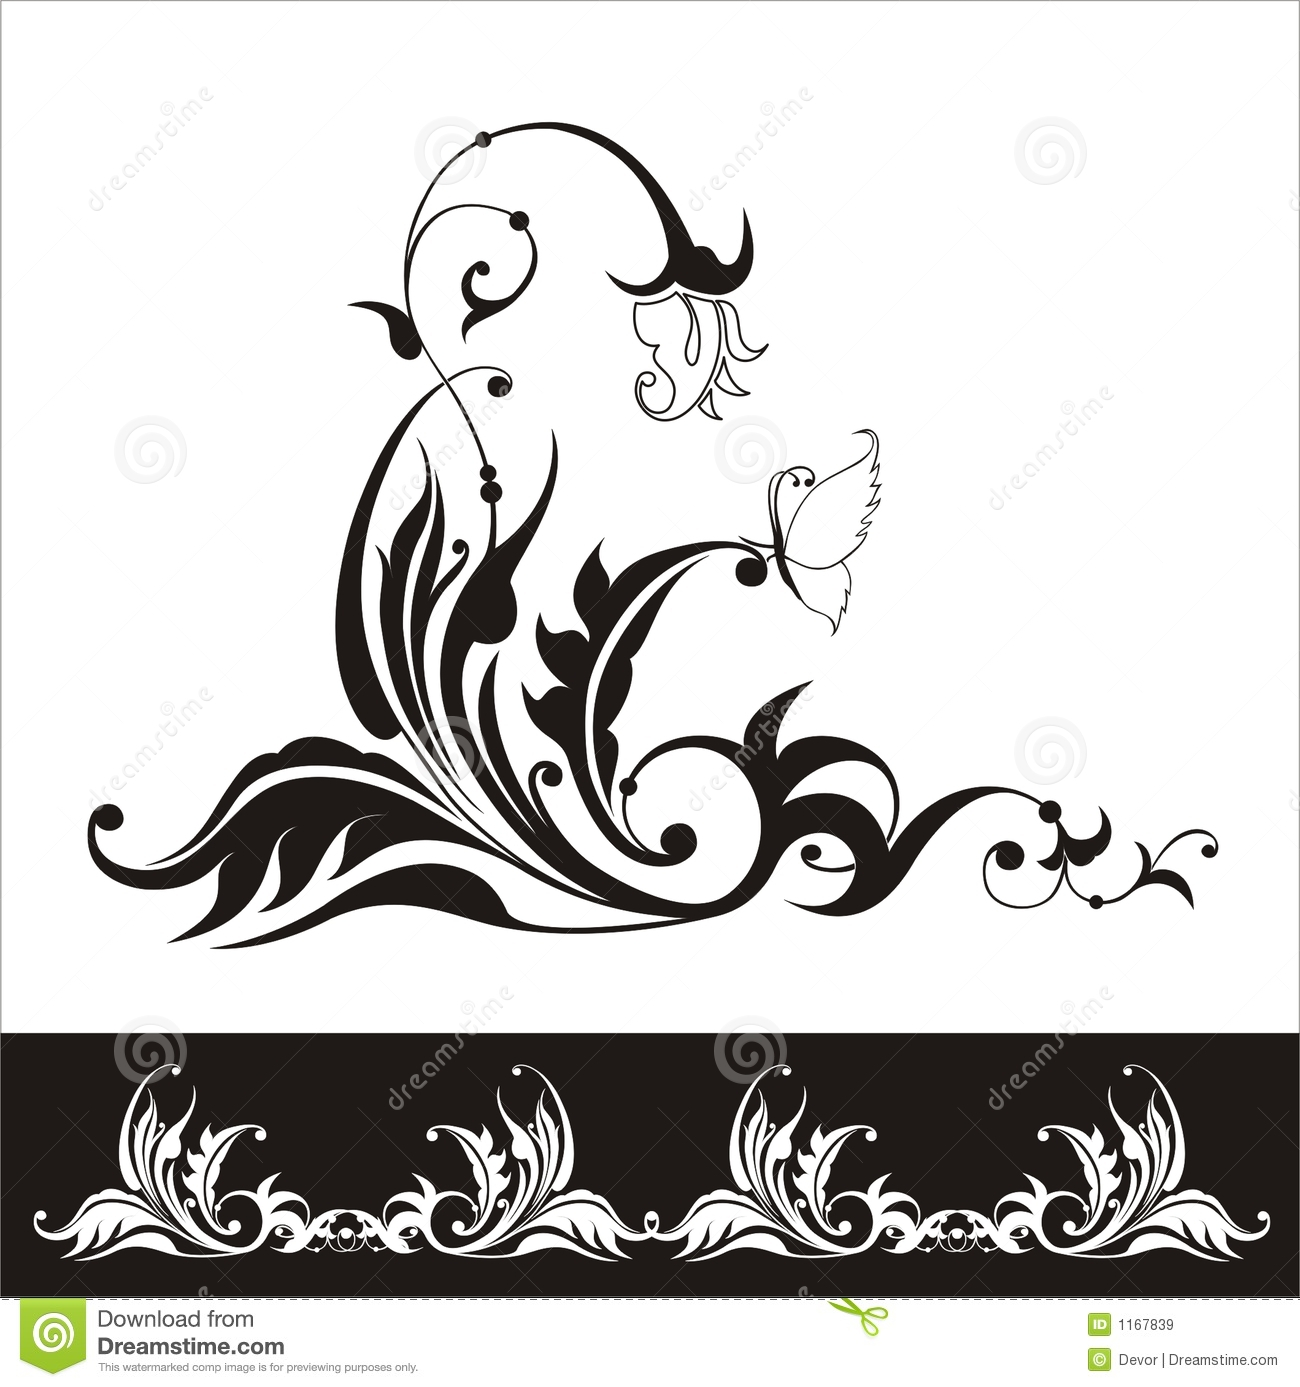 Black Flower Silhouette Pattern Royalty Free Stock Images: Vector Flower Silhouette With Floral Ornament Stock Vector